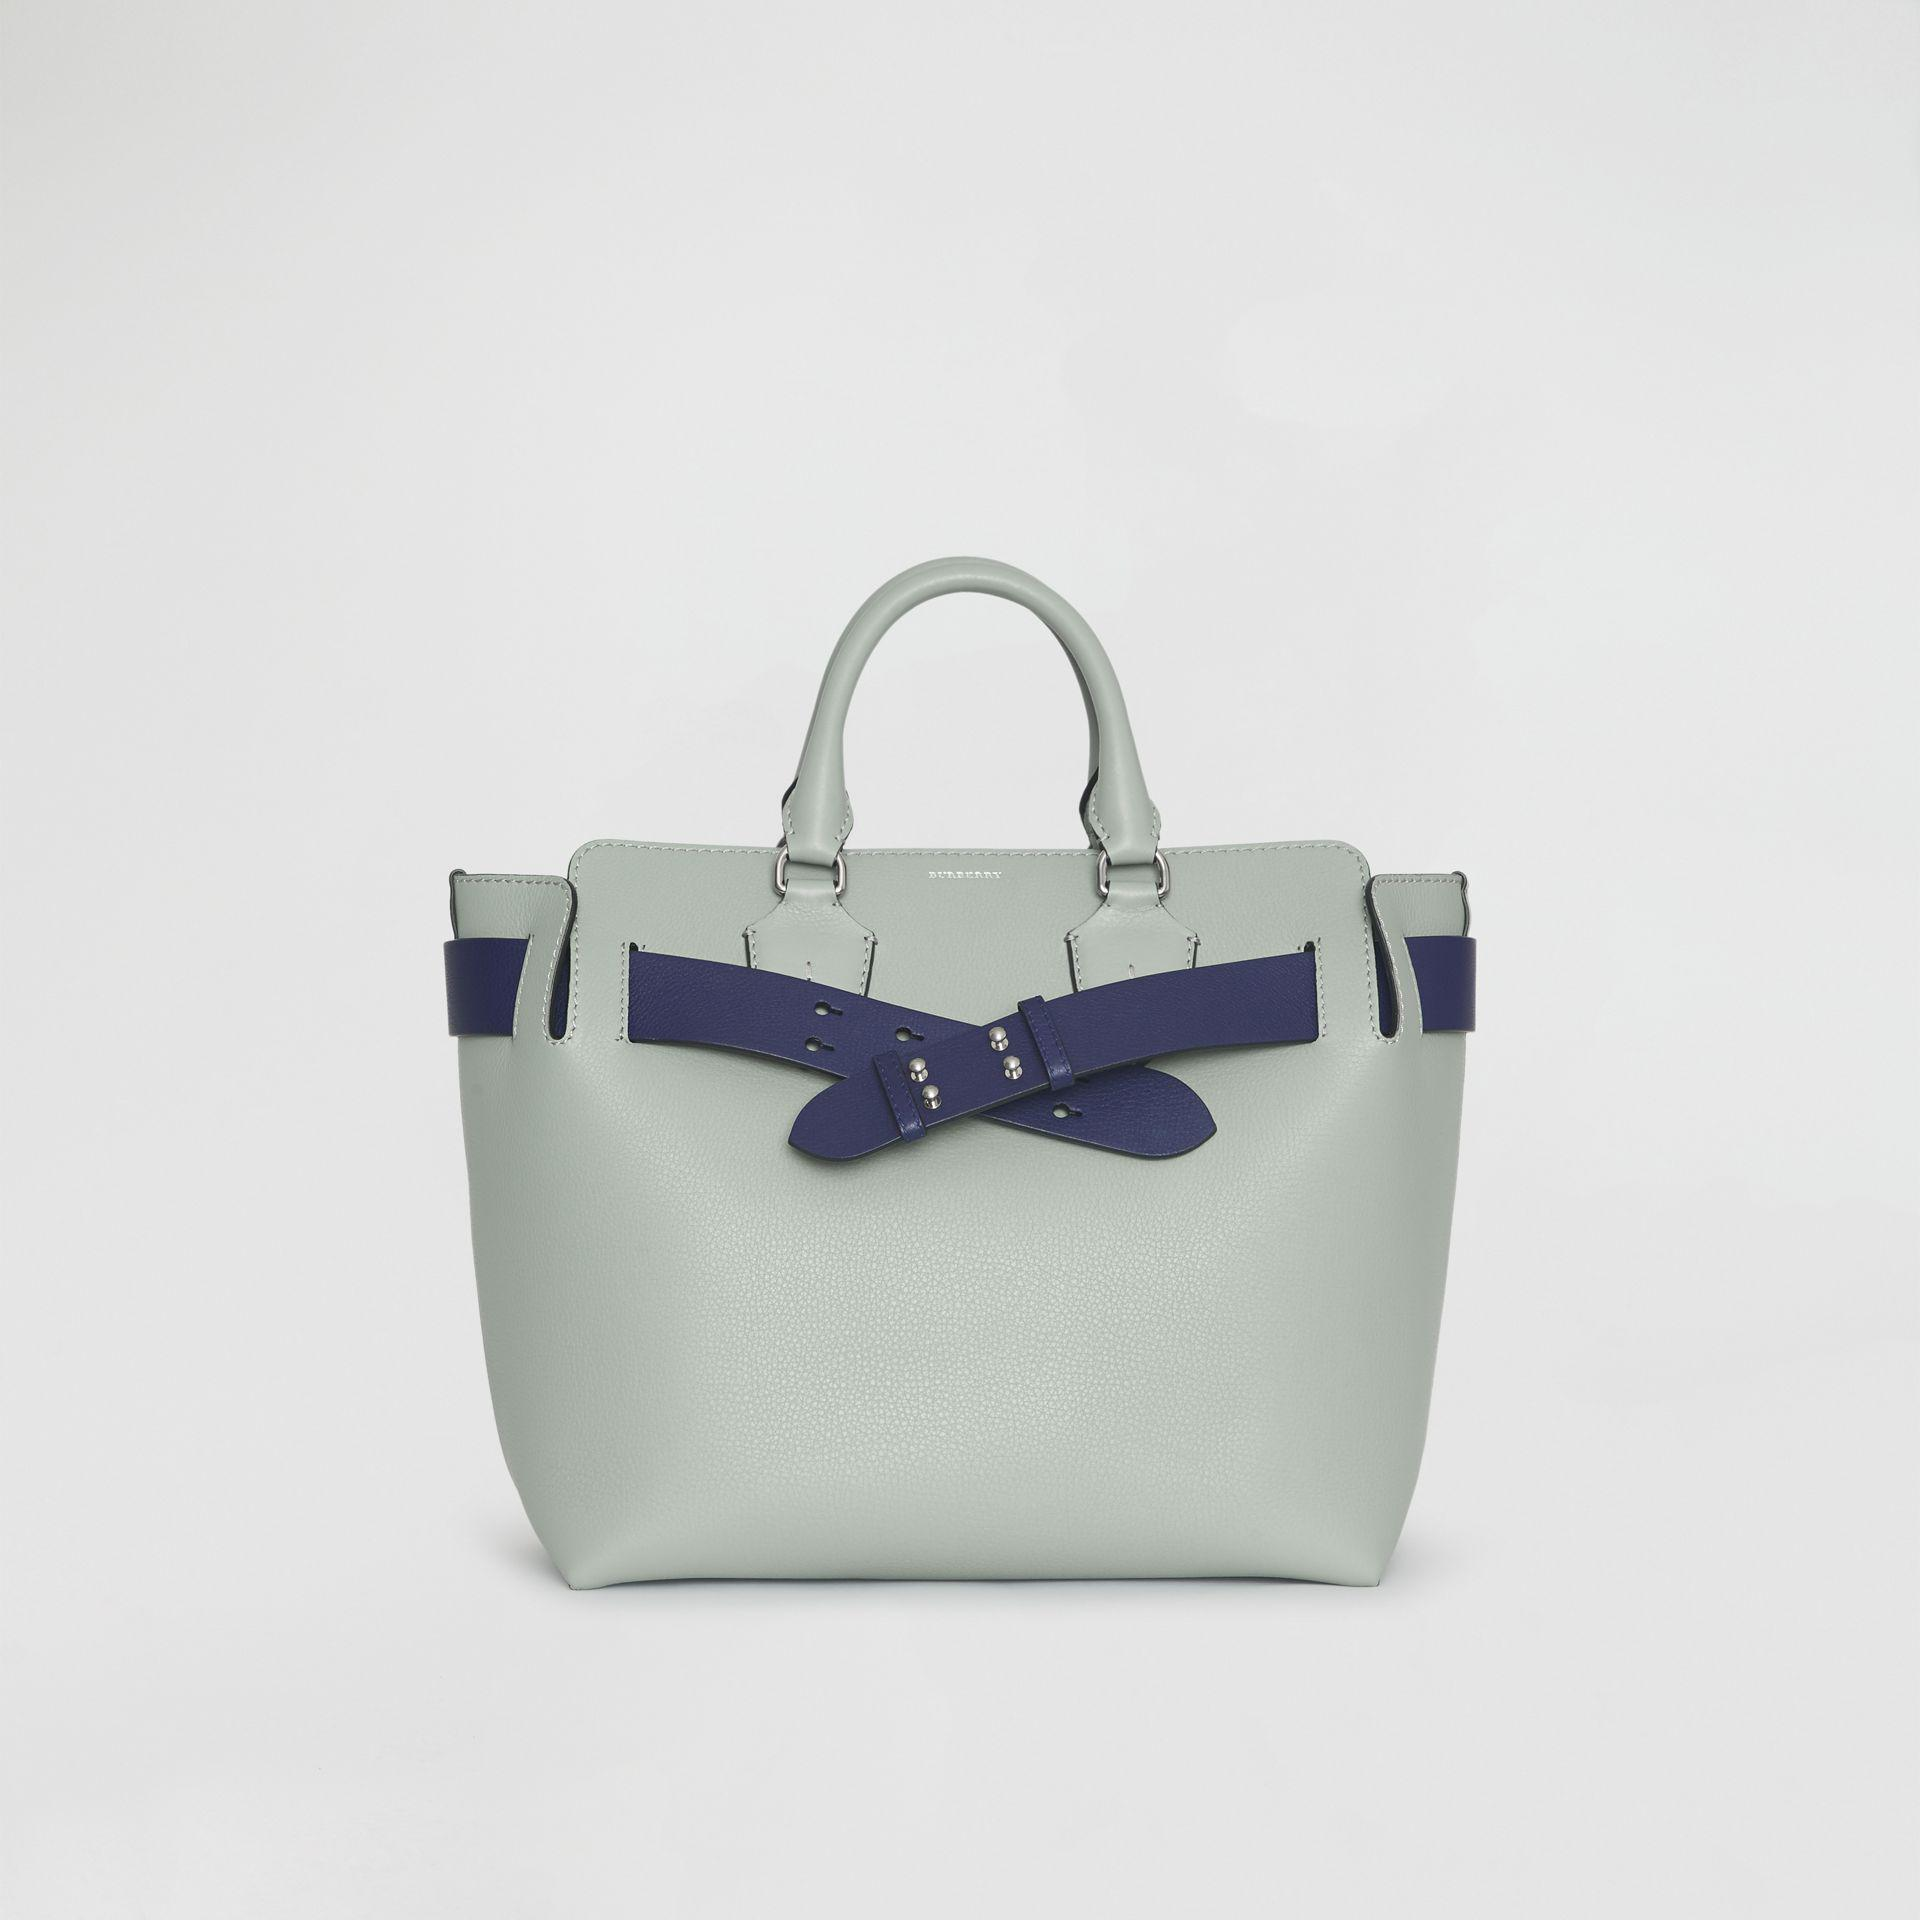 91bf79691832 Burberry The Medium Leather Belt Bag in Blue - Lyst